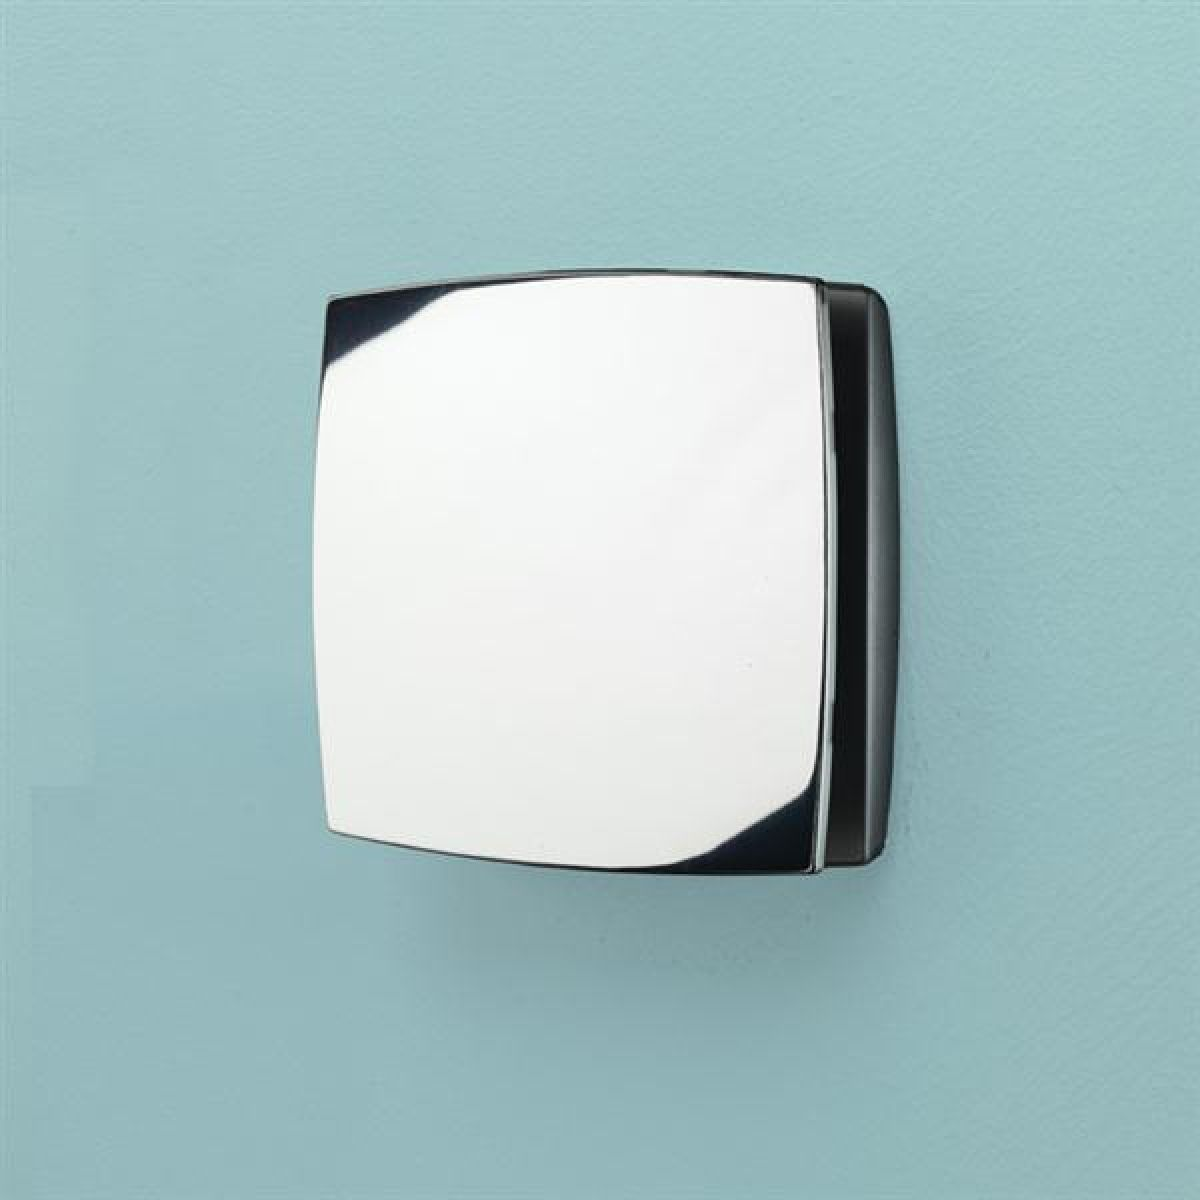 HiB Breeze Wall Mounted Chrome Wetroom Extractor Fan